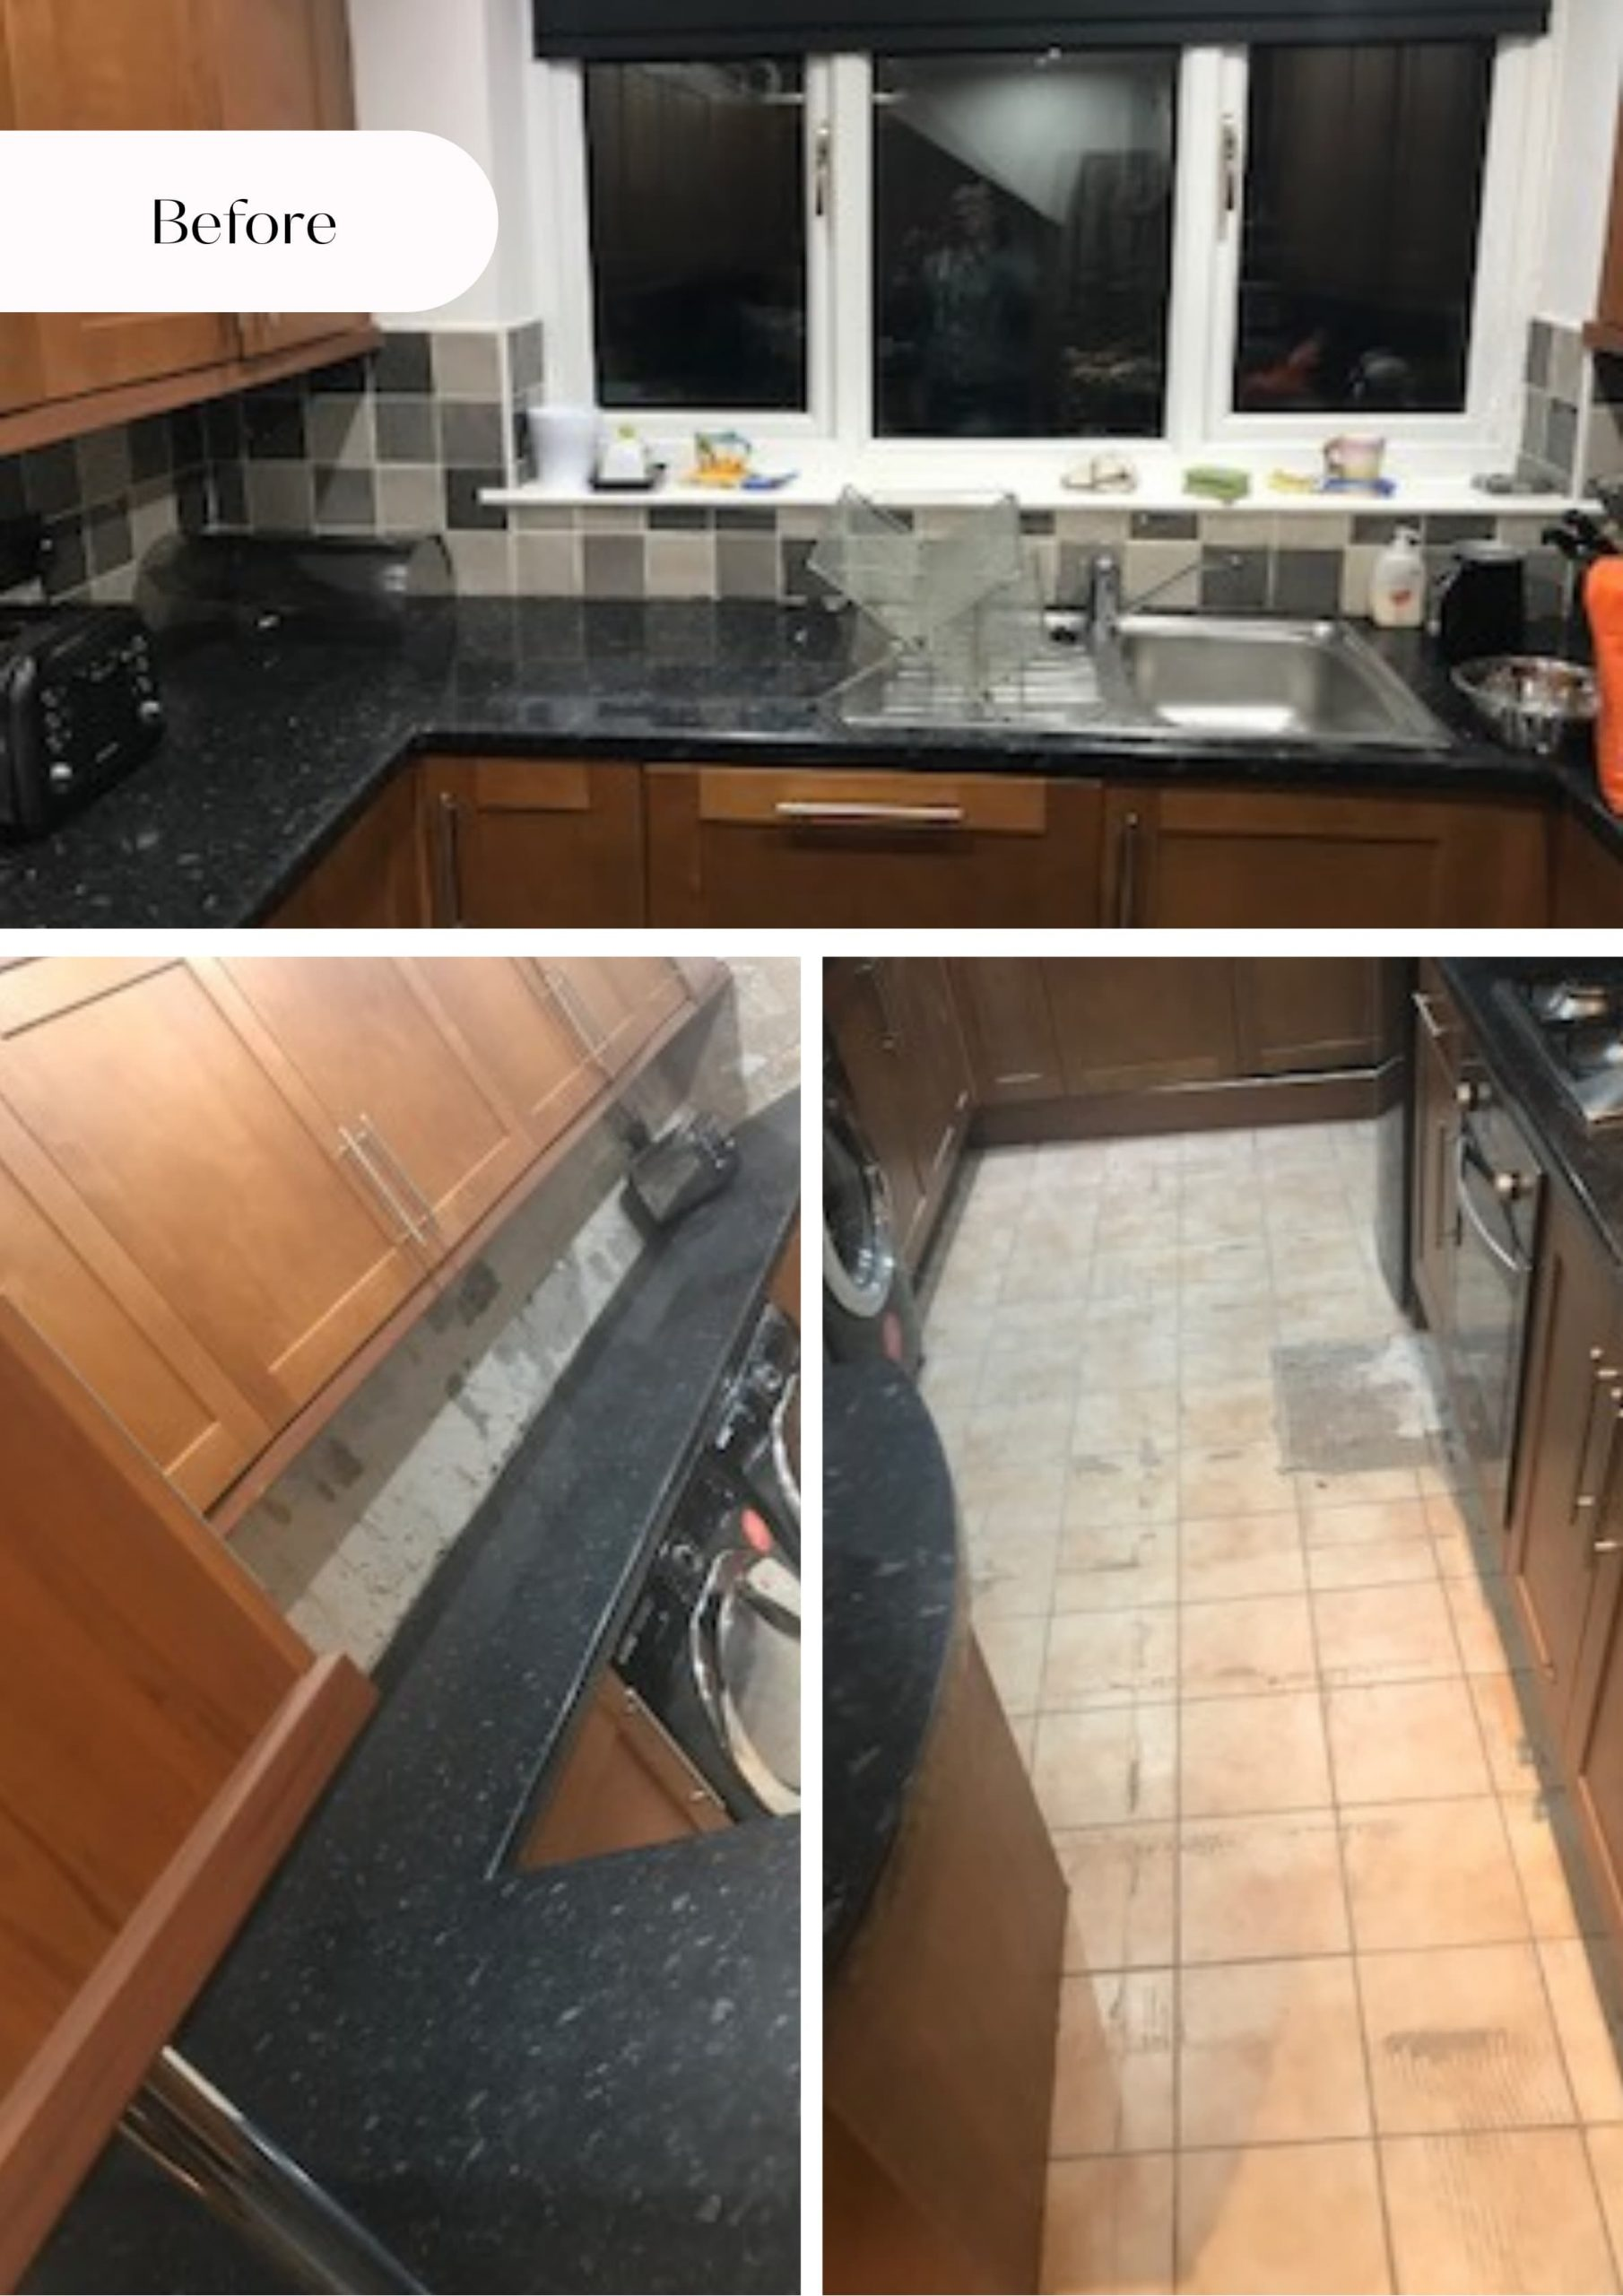 this is jackie's kitchen before the upcycling project